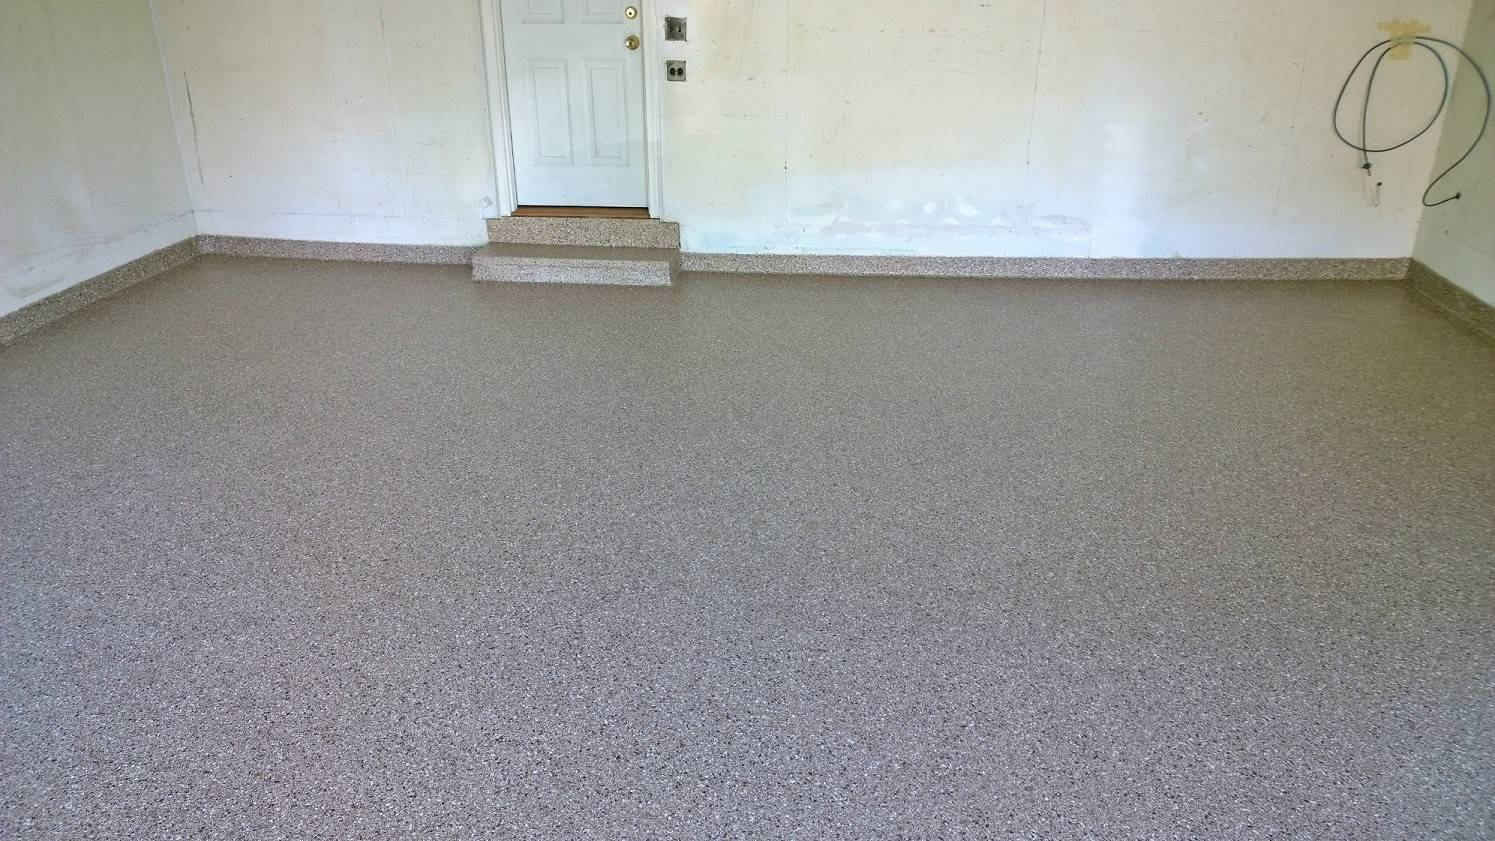 The Eglund's garage floor after a slip-resistant polymer floor was installed by Garage Store.